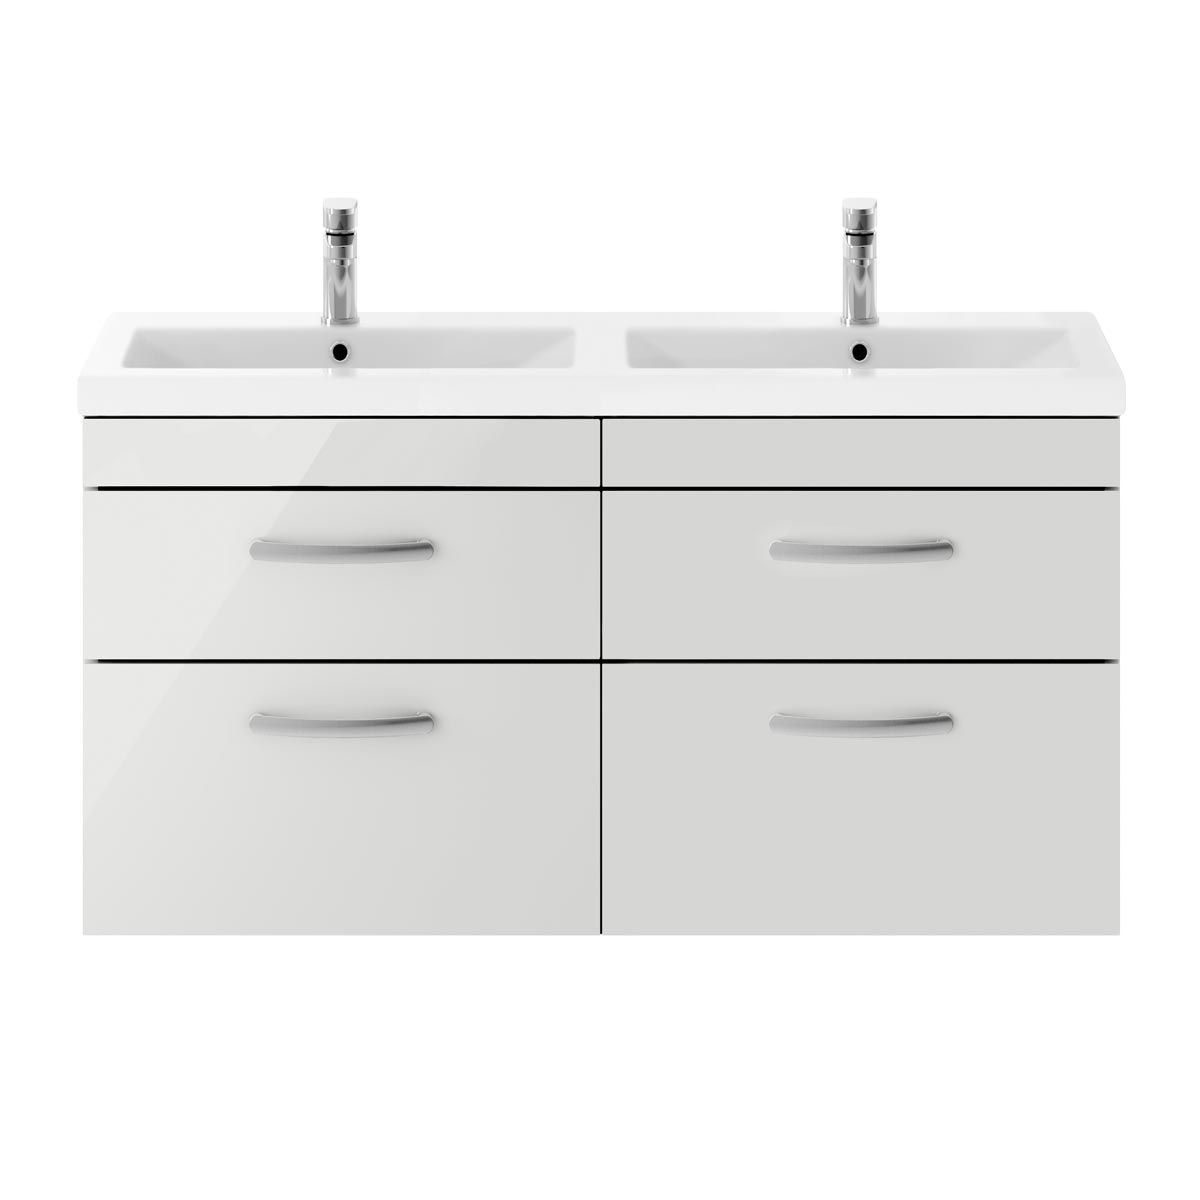 Nuie Athena Gloss Grey Mist 4 Drawer Wall Hung Vanity Unit with Ceramic Double Basin 1200mm